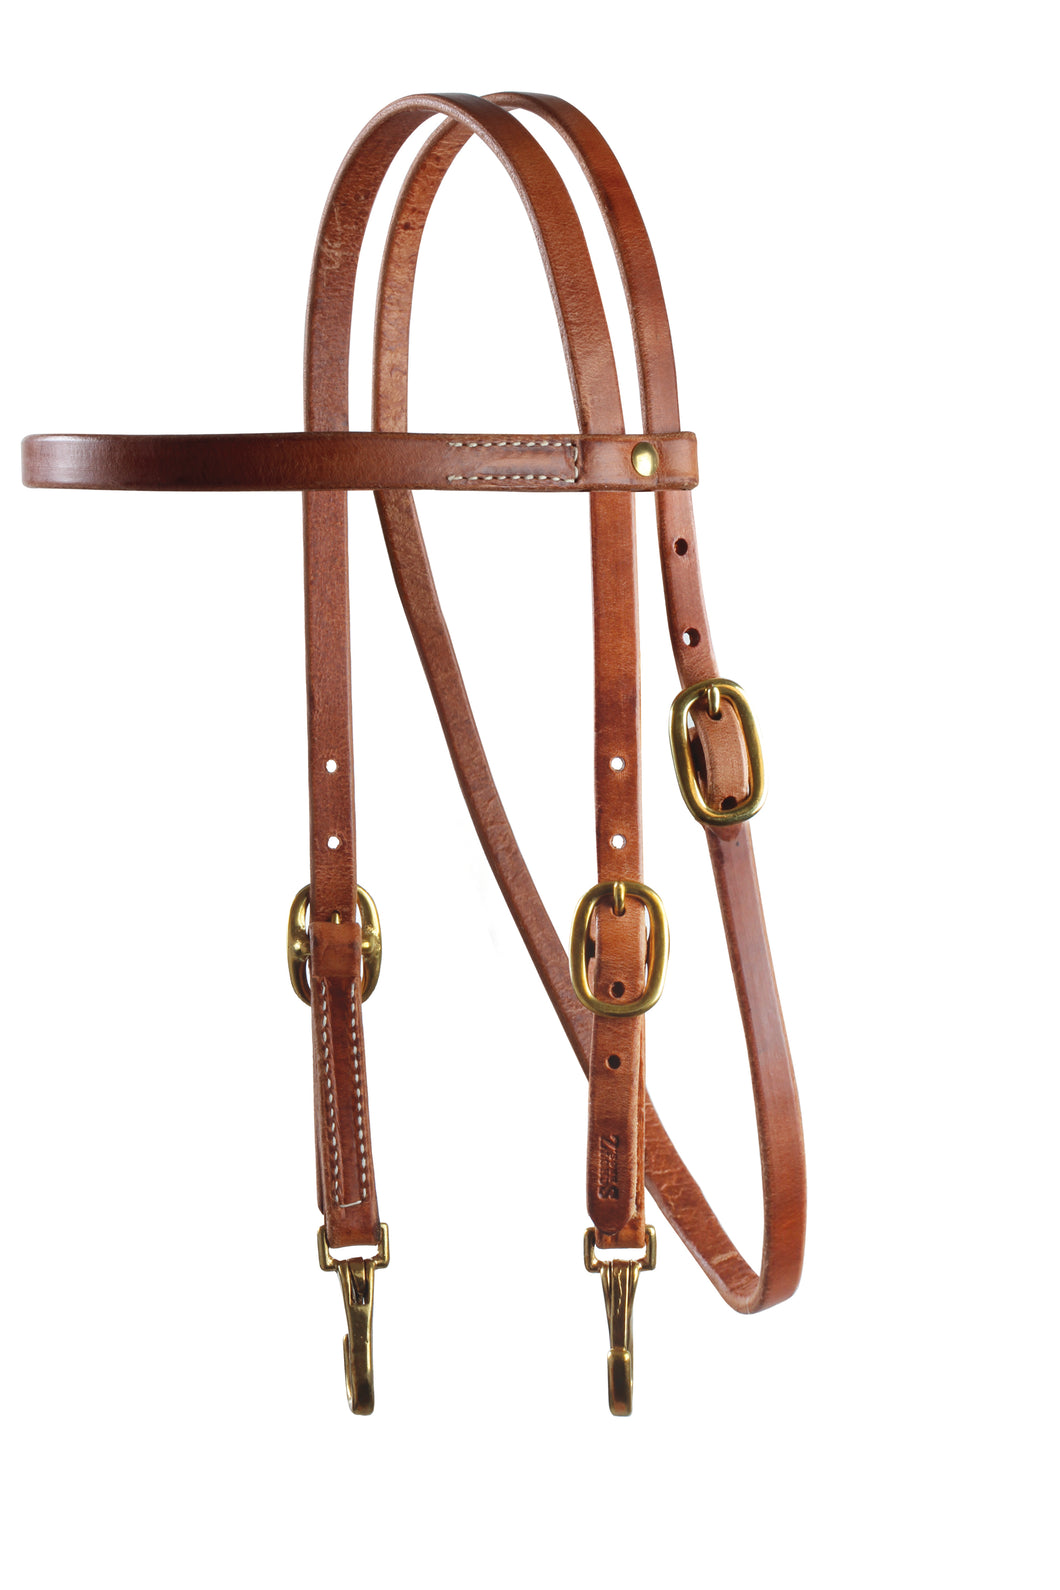 Professional's Choice Browband Headstall - Snap Cheeks